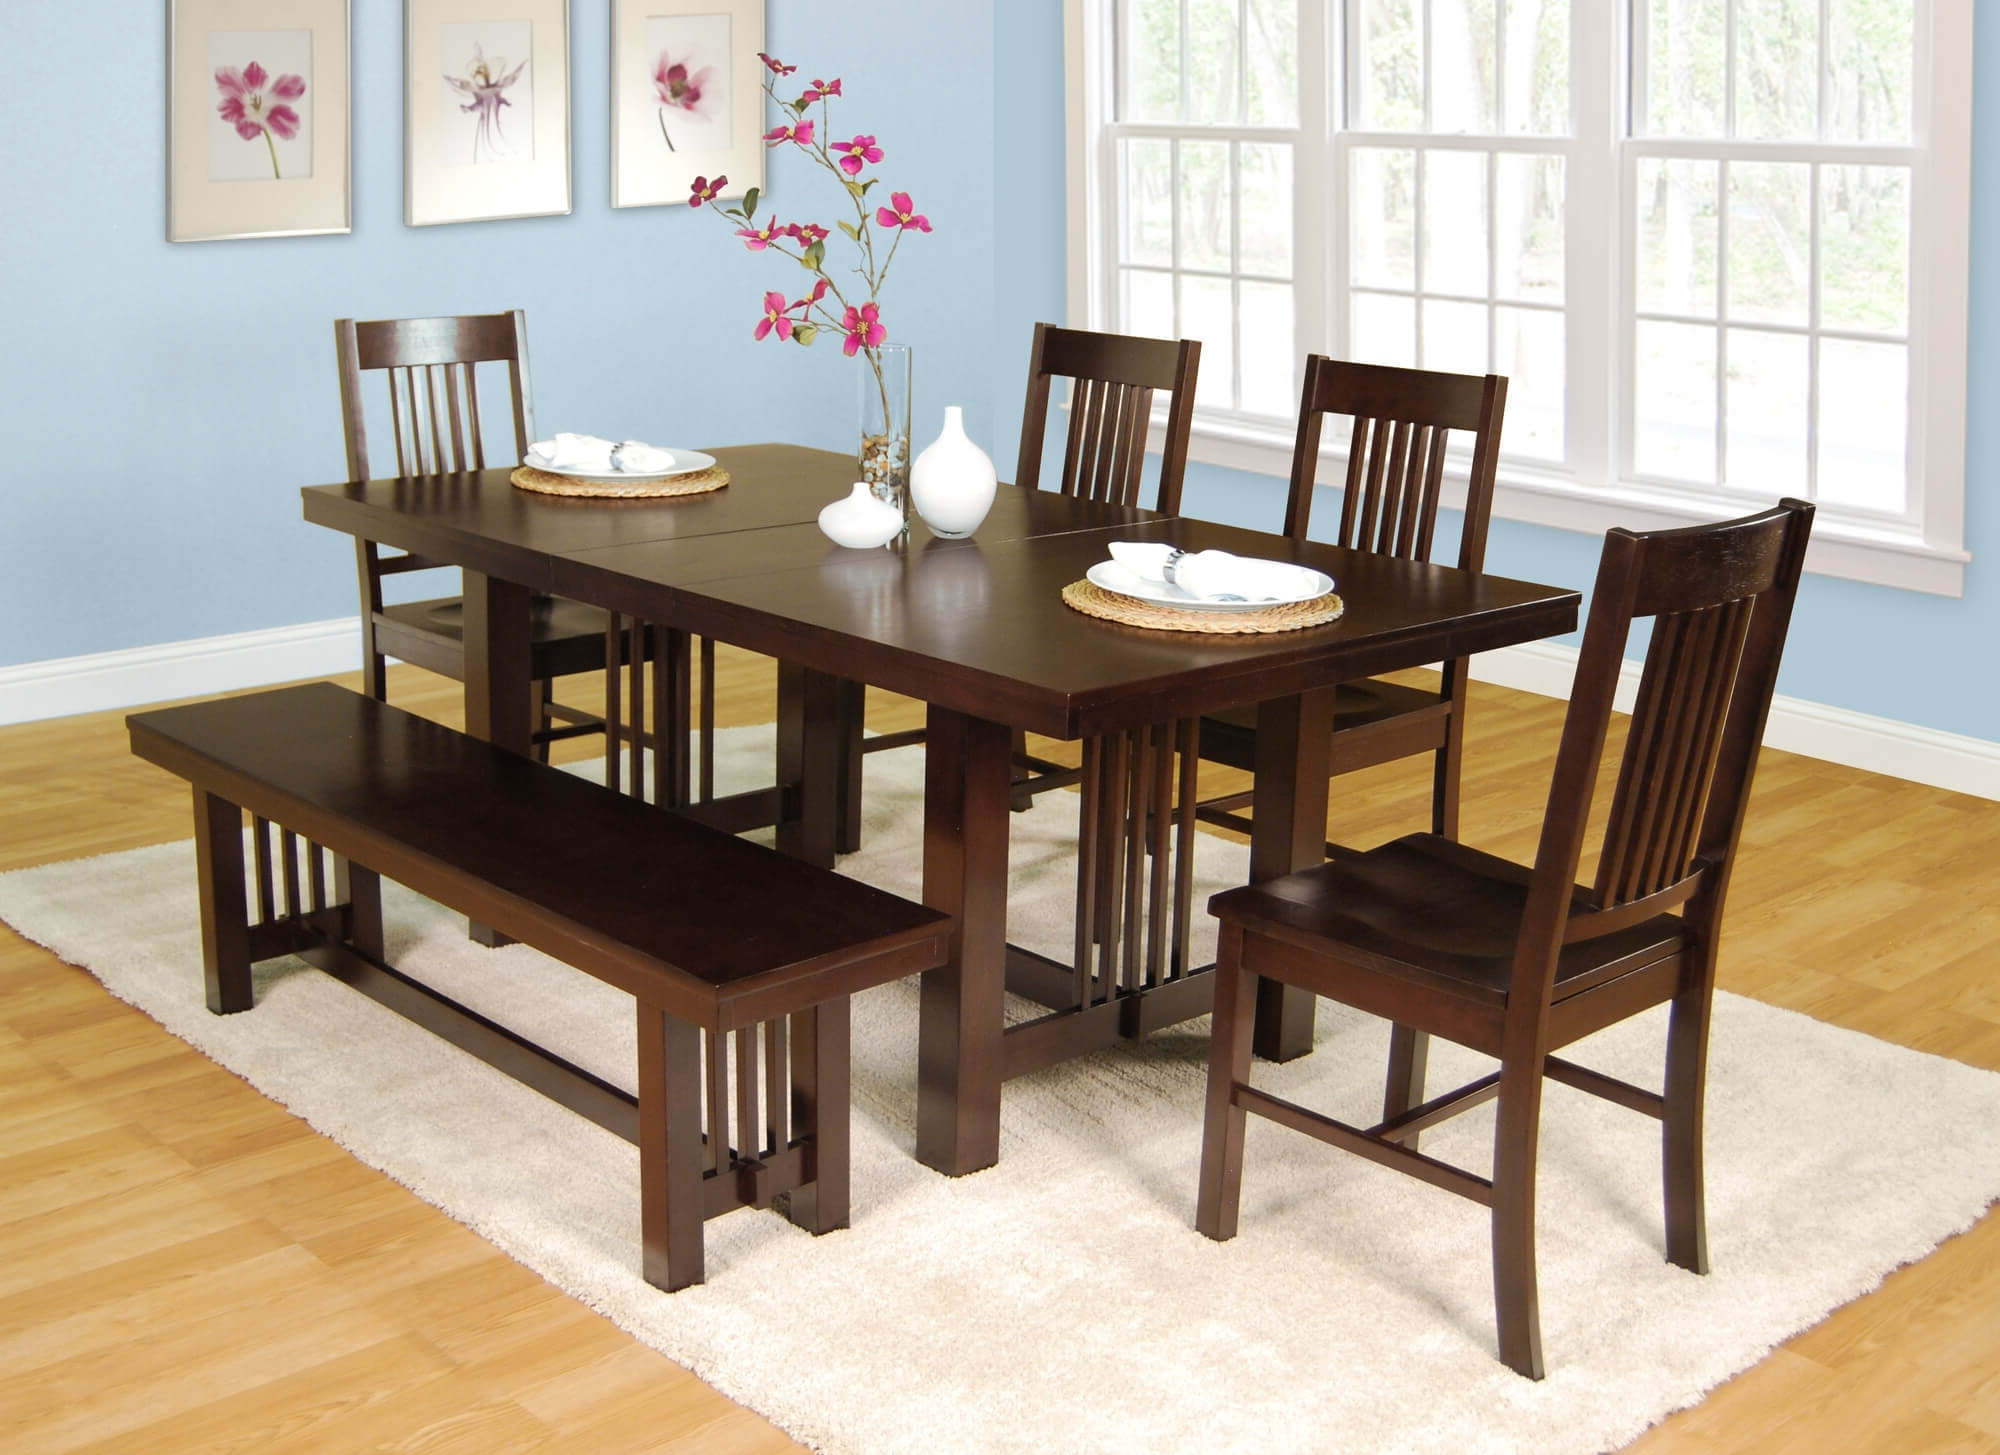 Well Known Dark Wood Dining Room Furniture Pertaining To 26 Dining Room Sets (Big And Small) With Bench Seating (2018) (View 22 of 25)